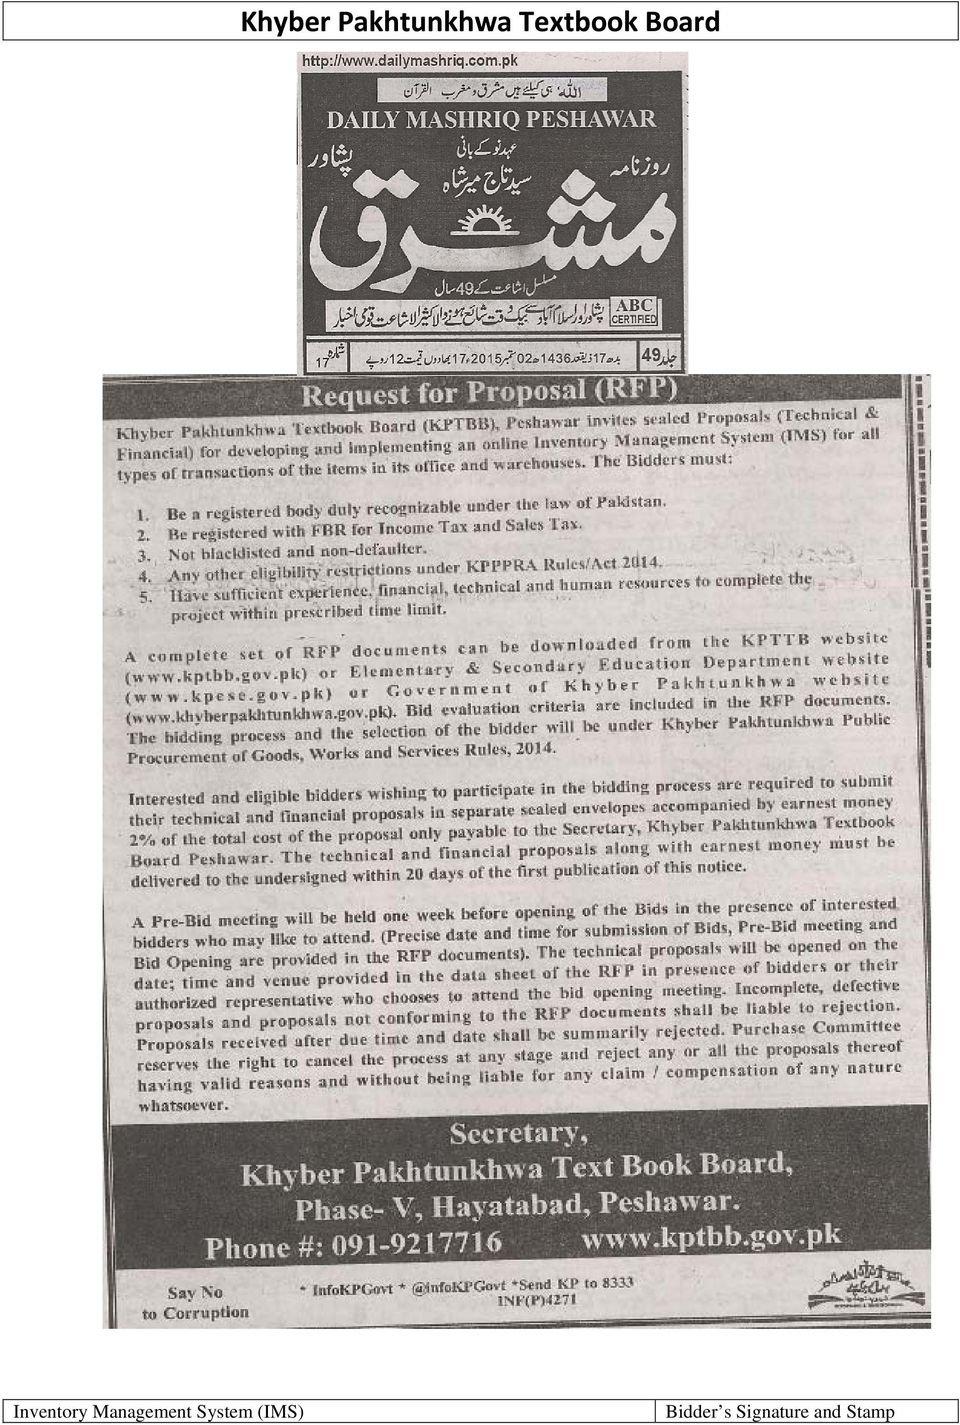 Request for Proposal (RFP) - PDF